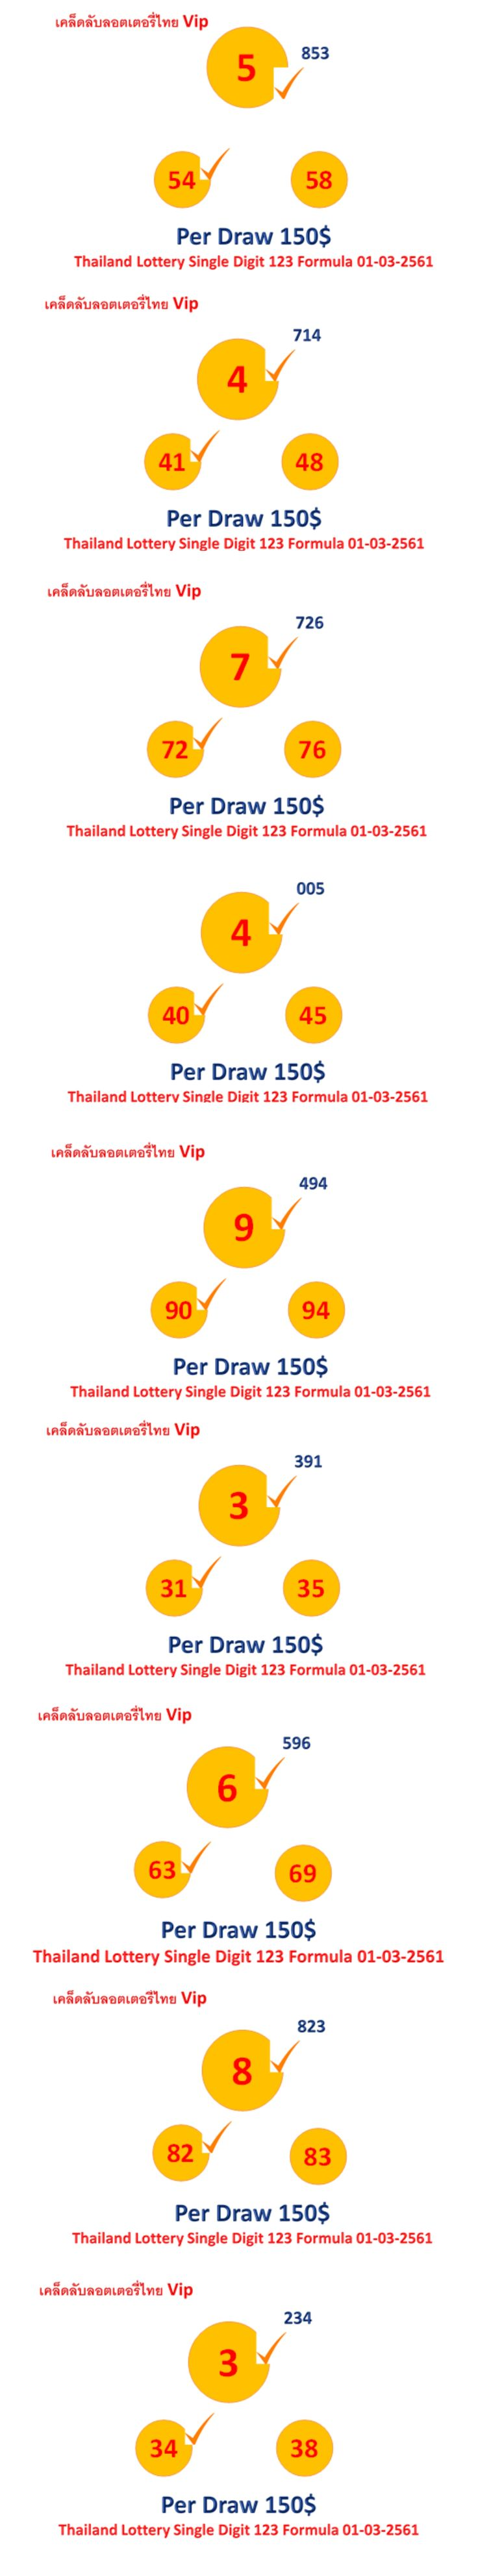 Thailand Lottery Tips For 02-03-2018 3up Straight Winning Formula  #thailotto  #thailottery  #thailandlotterytips